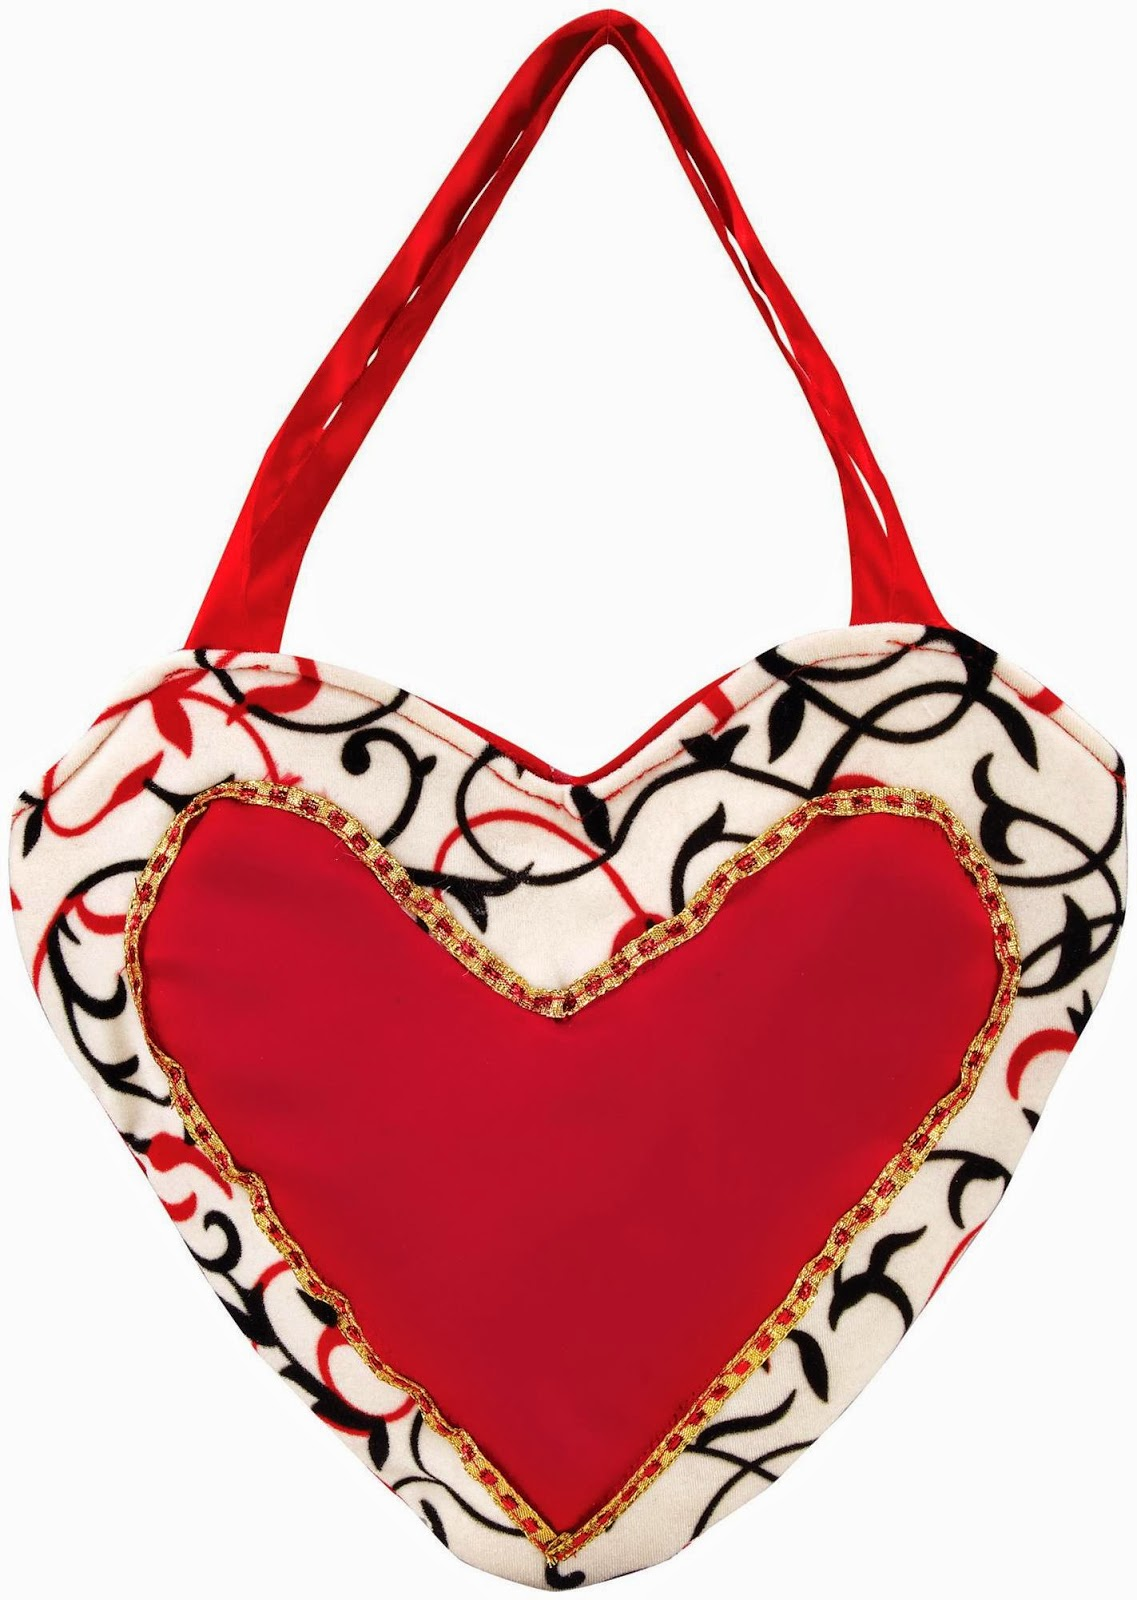 http://www.partybell.com/p-2948-queen-of-hearts-purse.aspx?utm_source=Social&utm_medium=Blog&utm_campaign=queen_of_hearts_purse